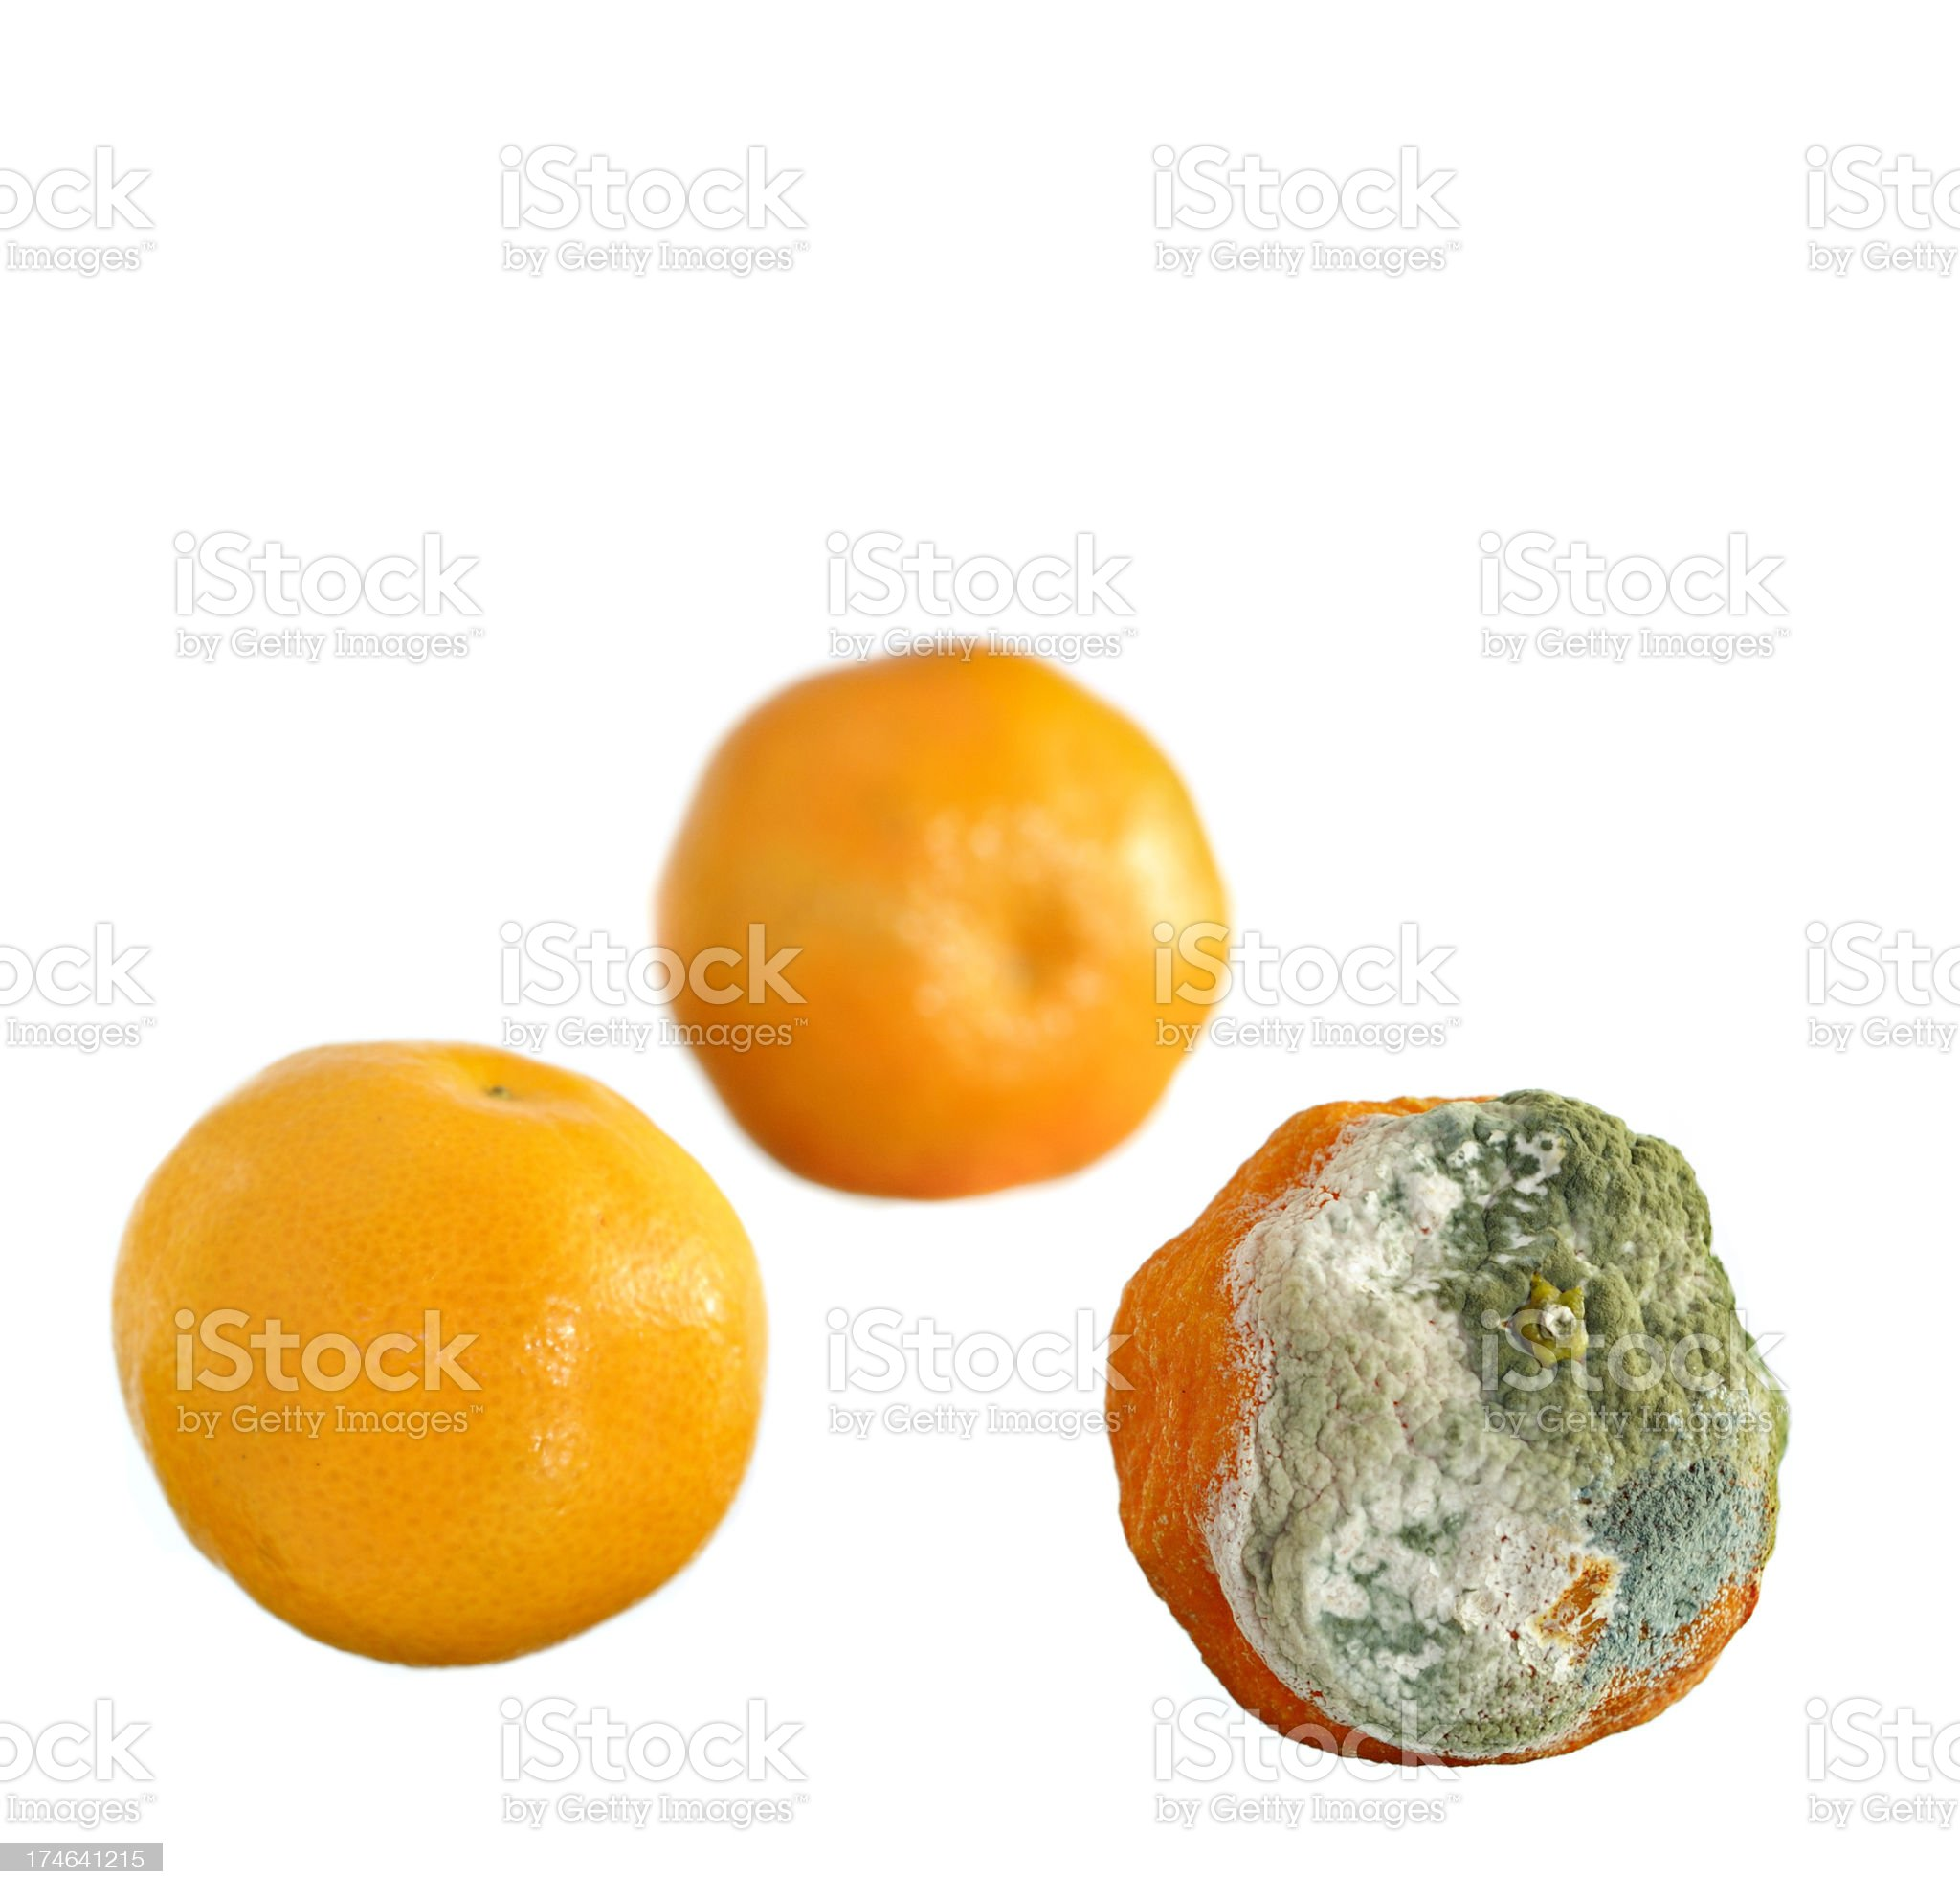 Satsumas Isolated on White royalty-free stock photo